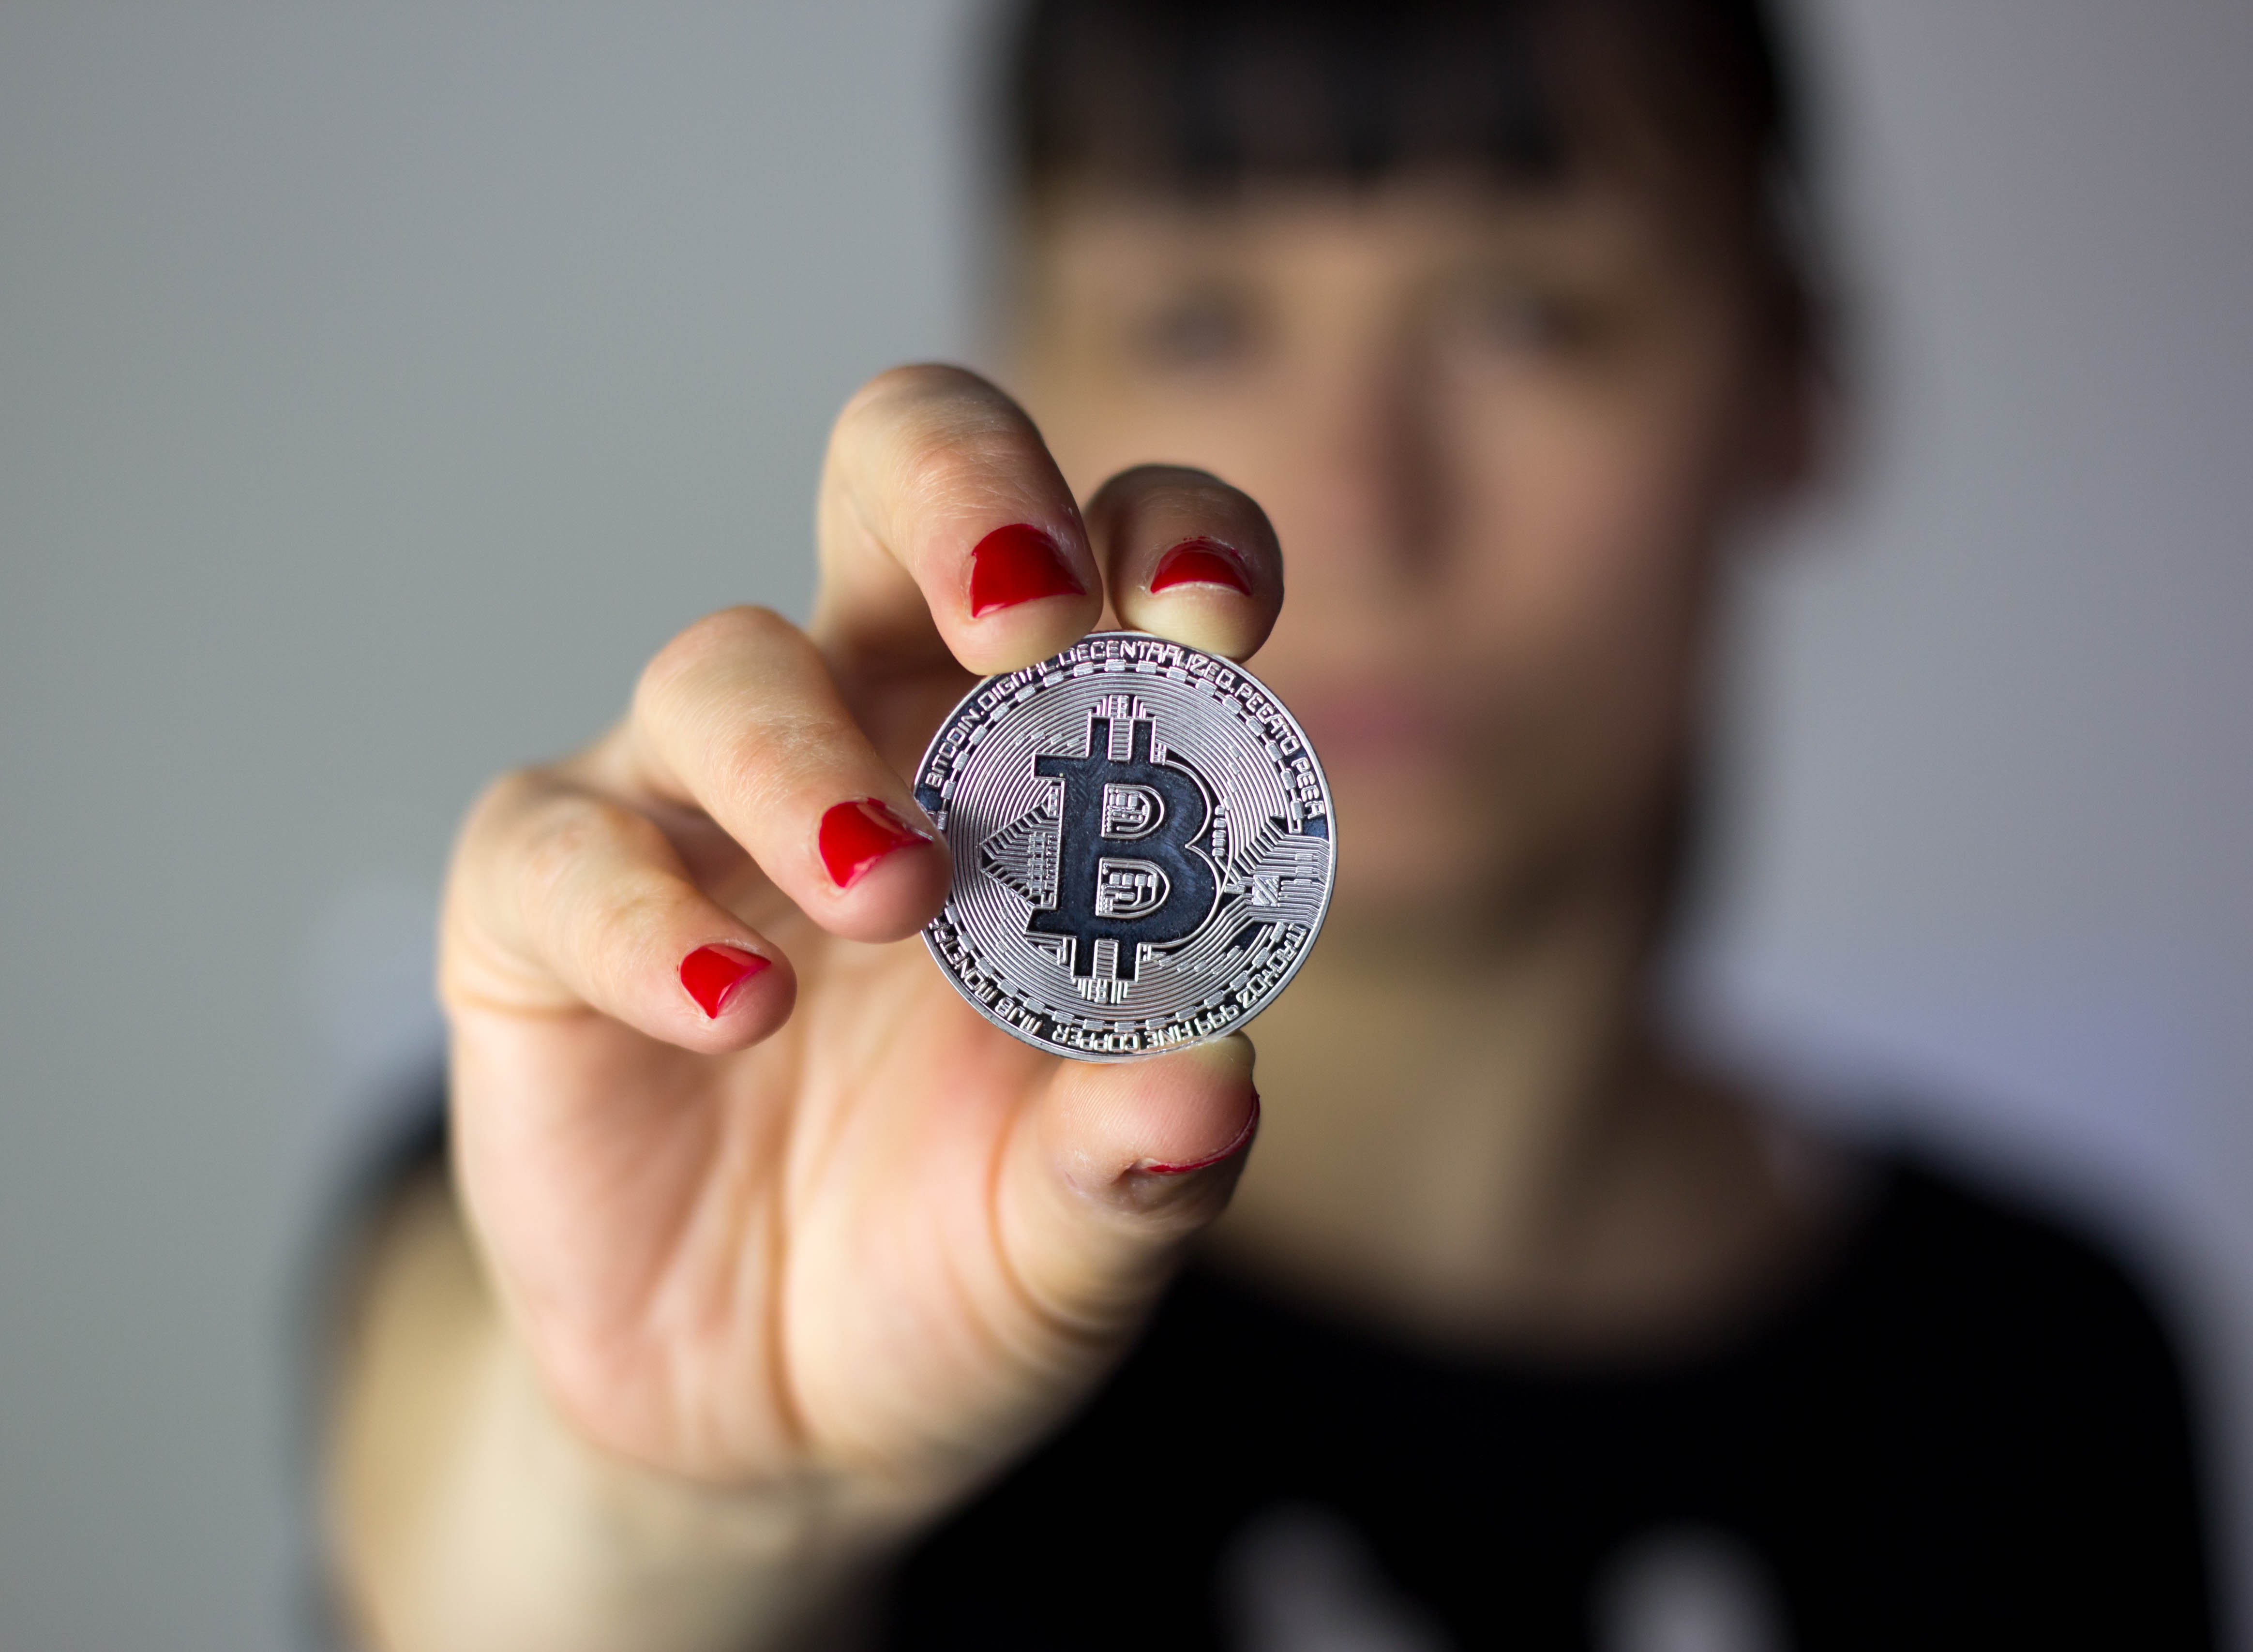 Beyond cryptocurrencies, blockchain is finding new applications in verticals like finance, insurance, retail, health and energy. (Photo: Marco Verch, Flickr Creative Commons)